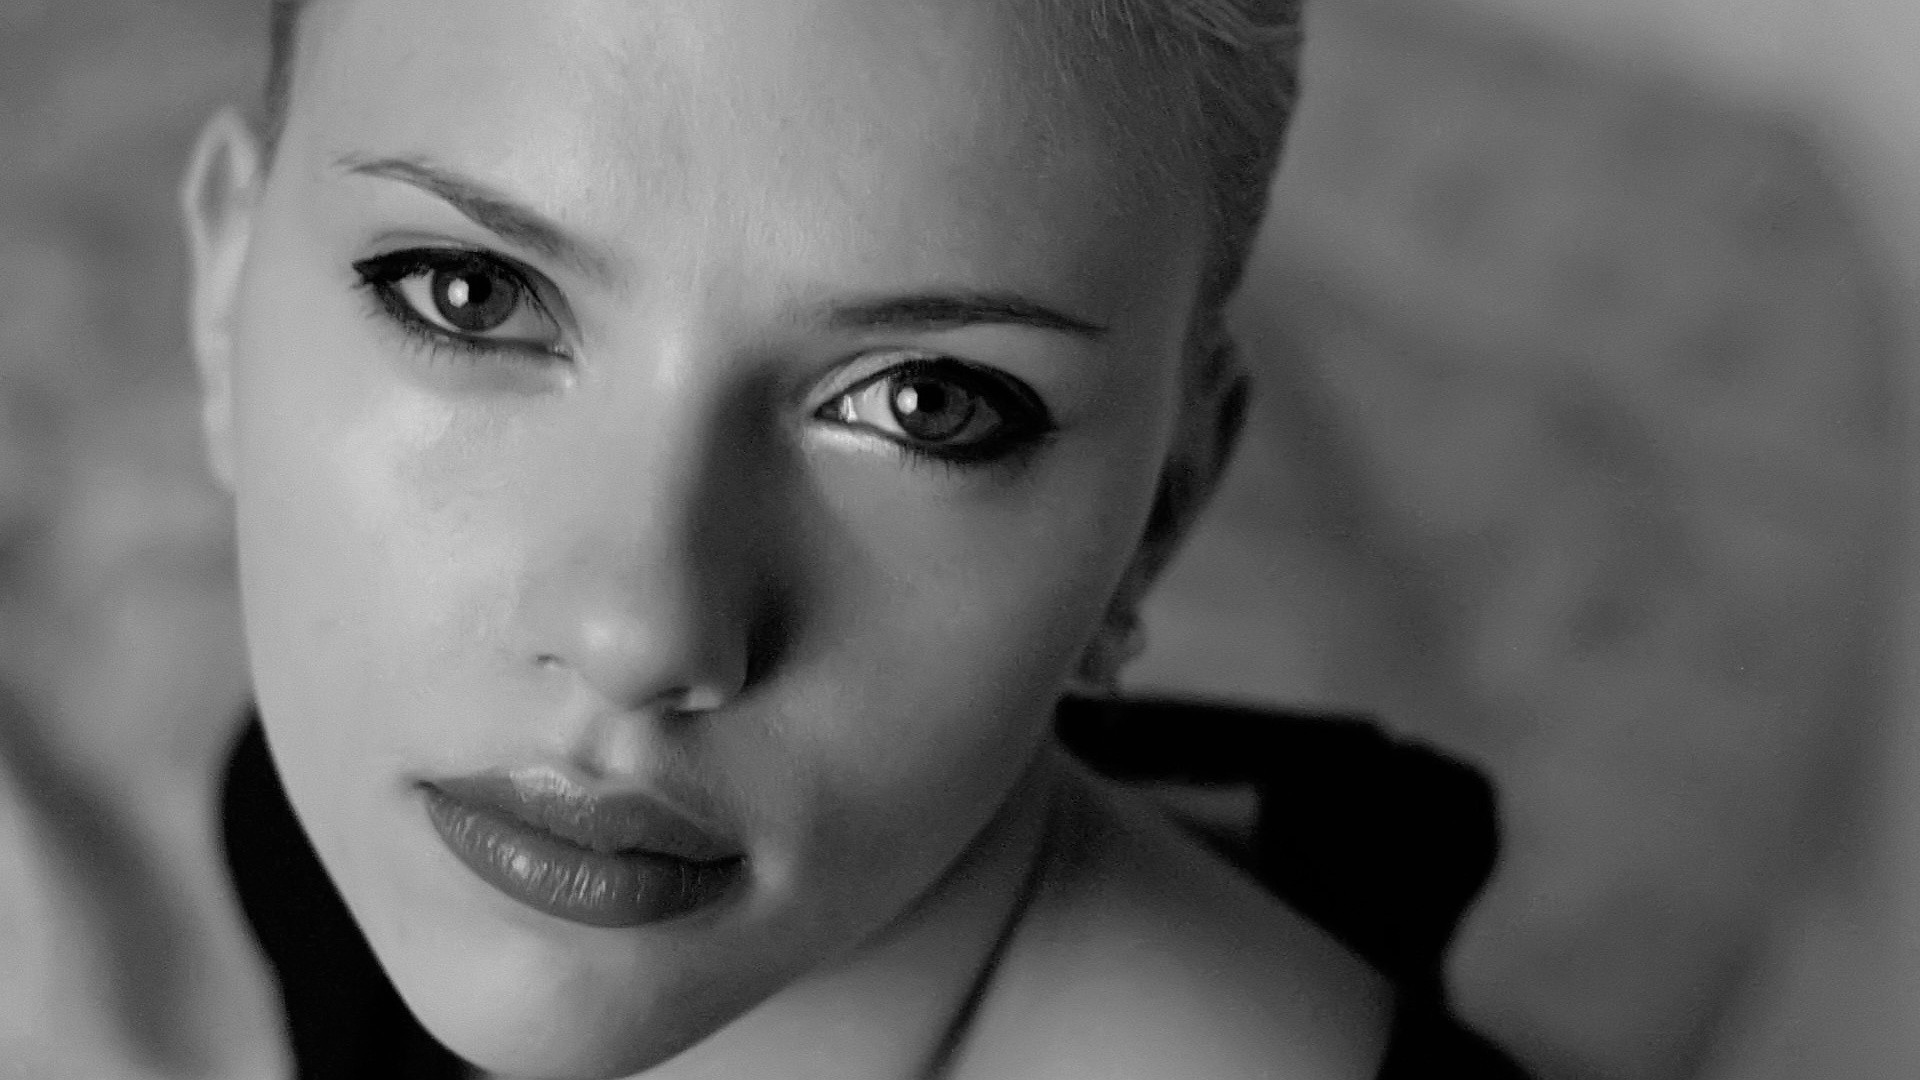 People 1920x1080 Scarlett Johansson women face monochrome actress